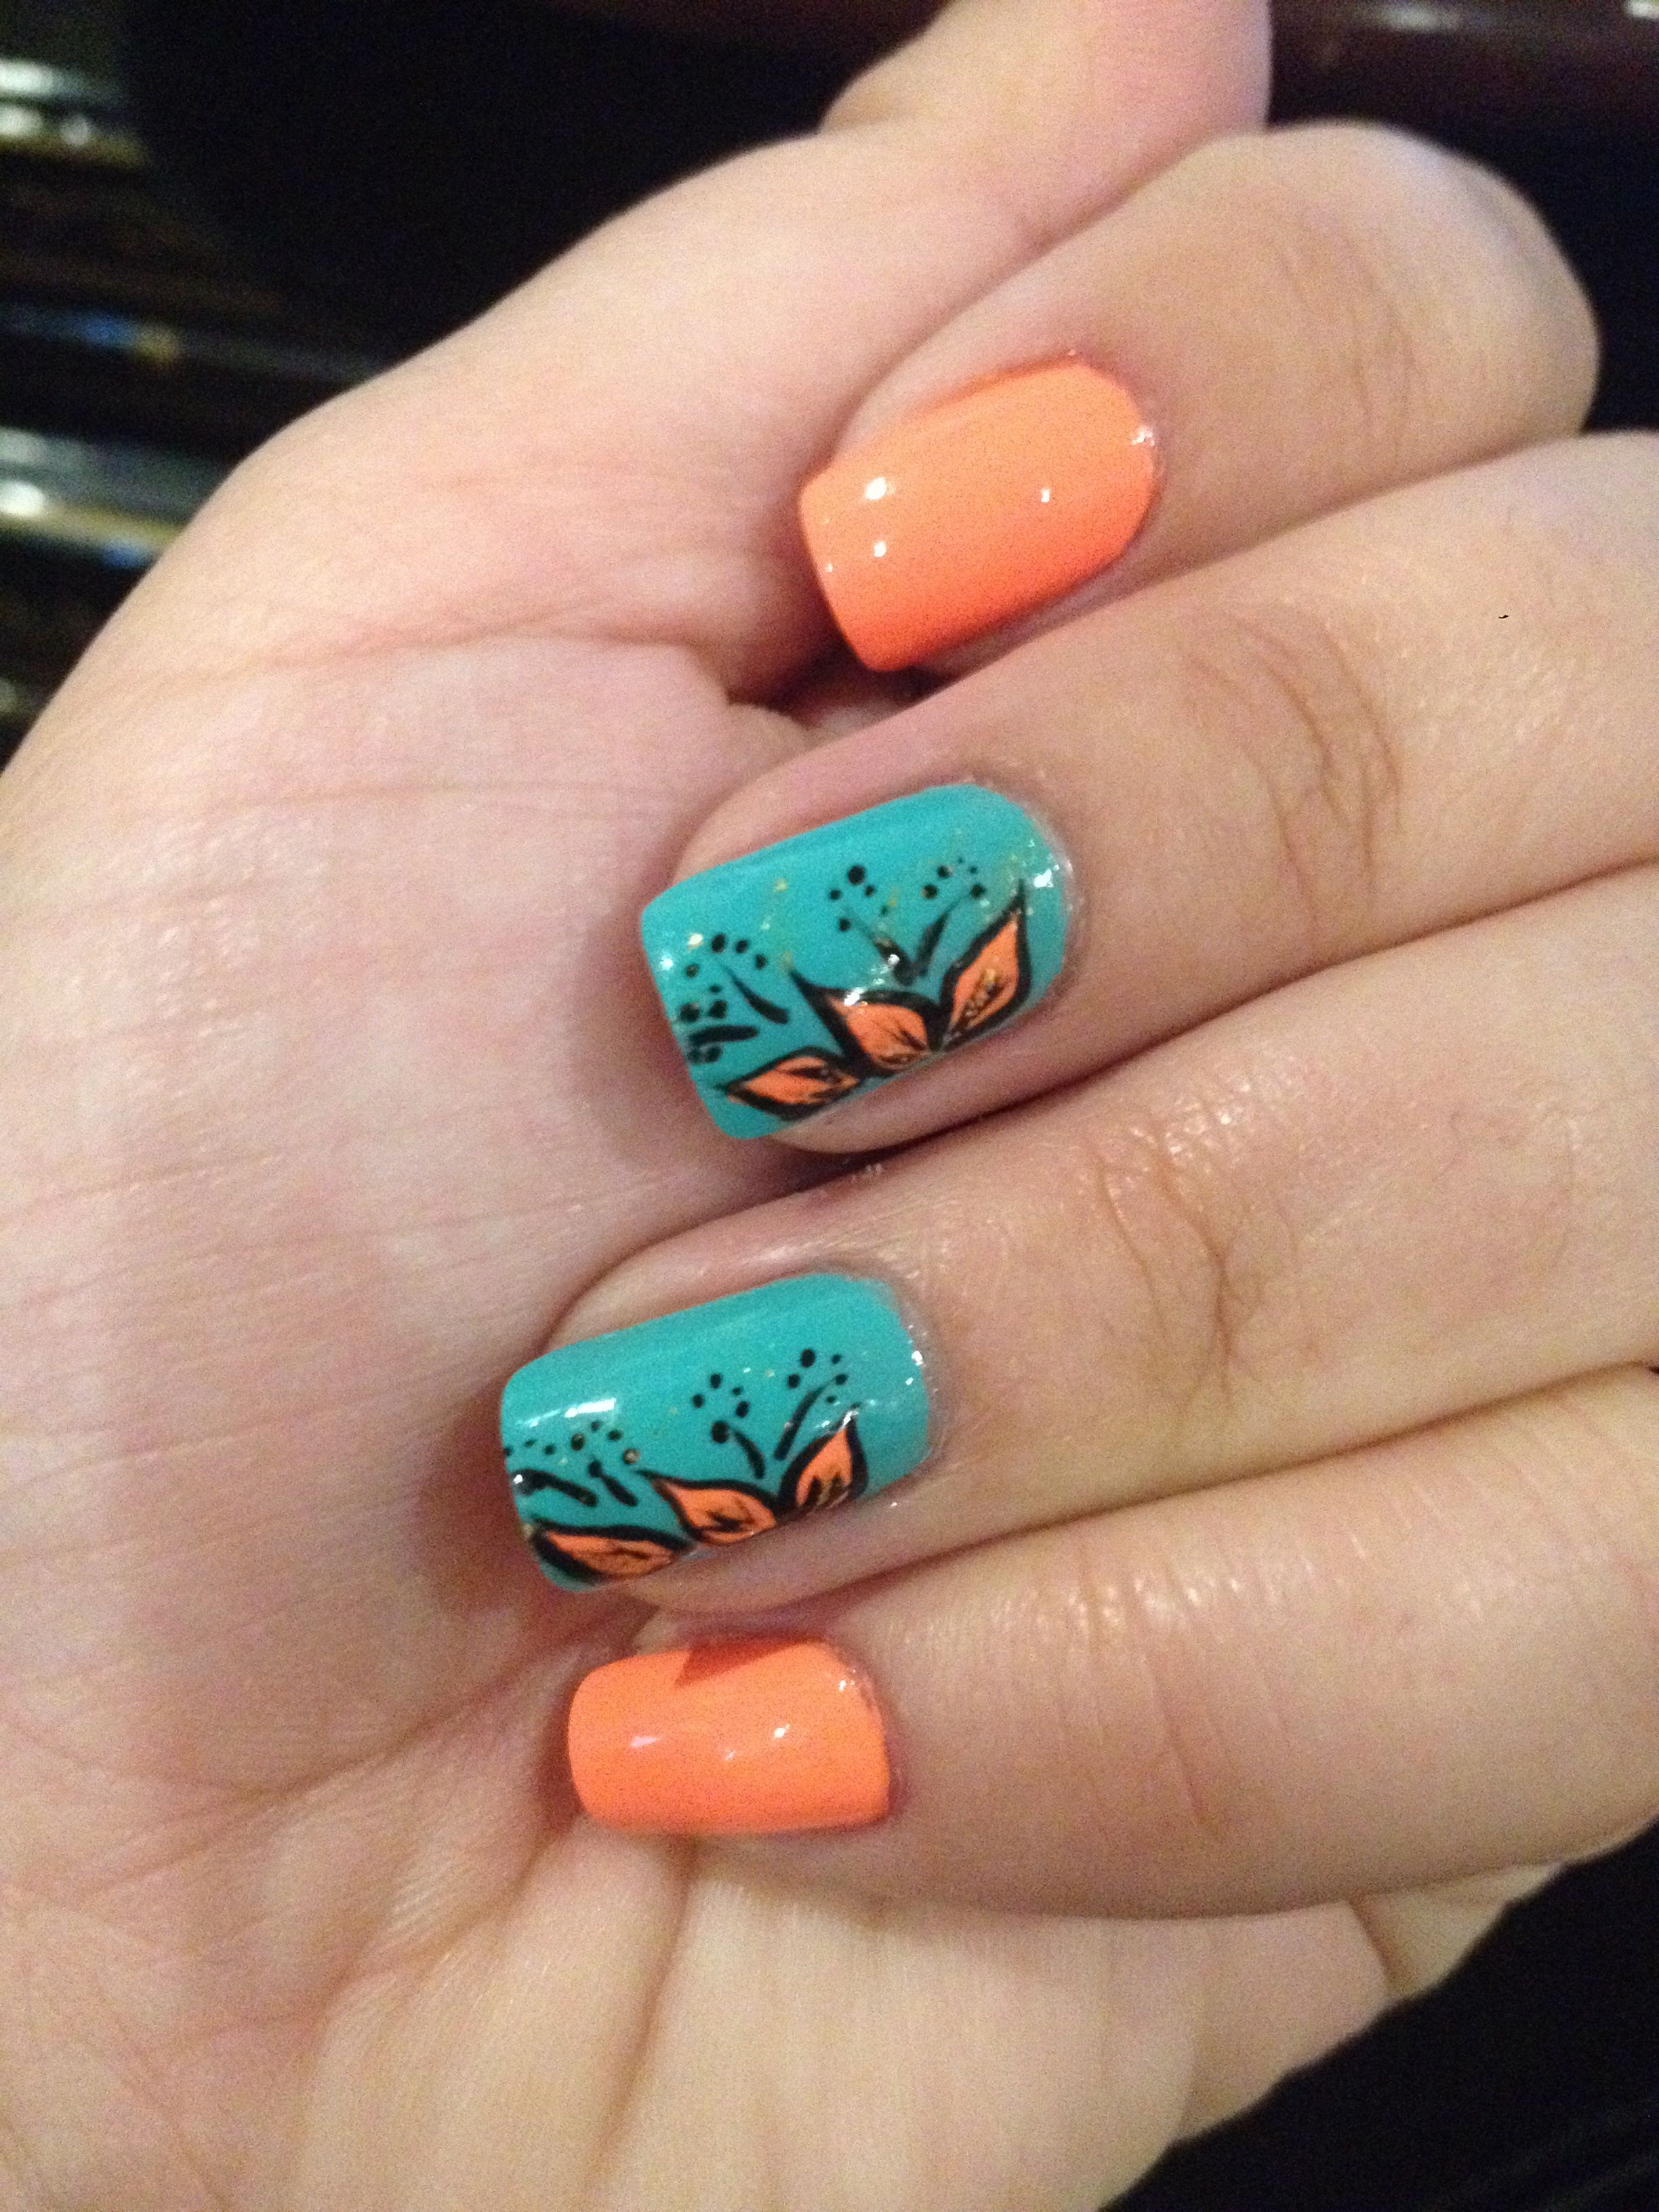 Really liking the two nails different colors with designs.